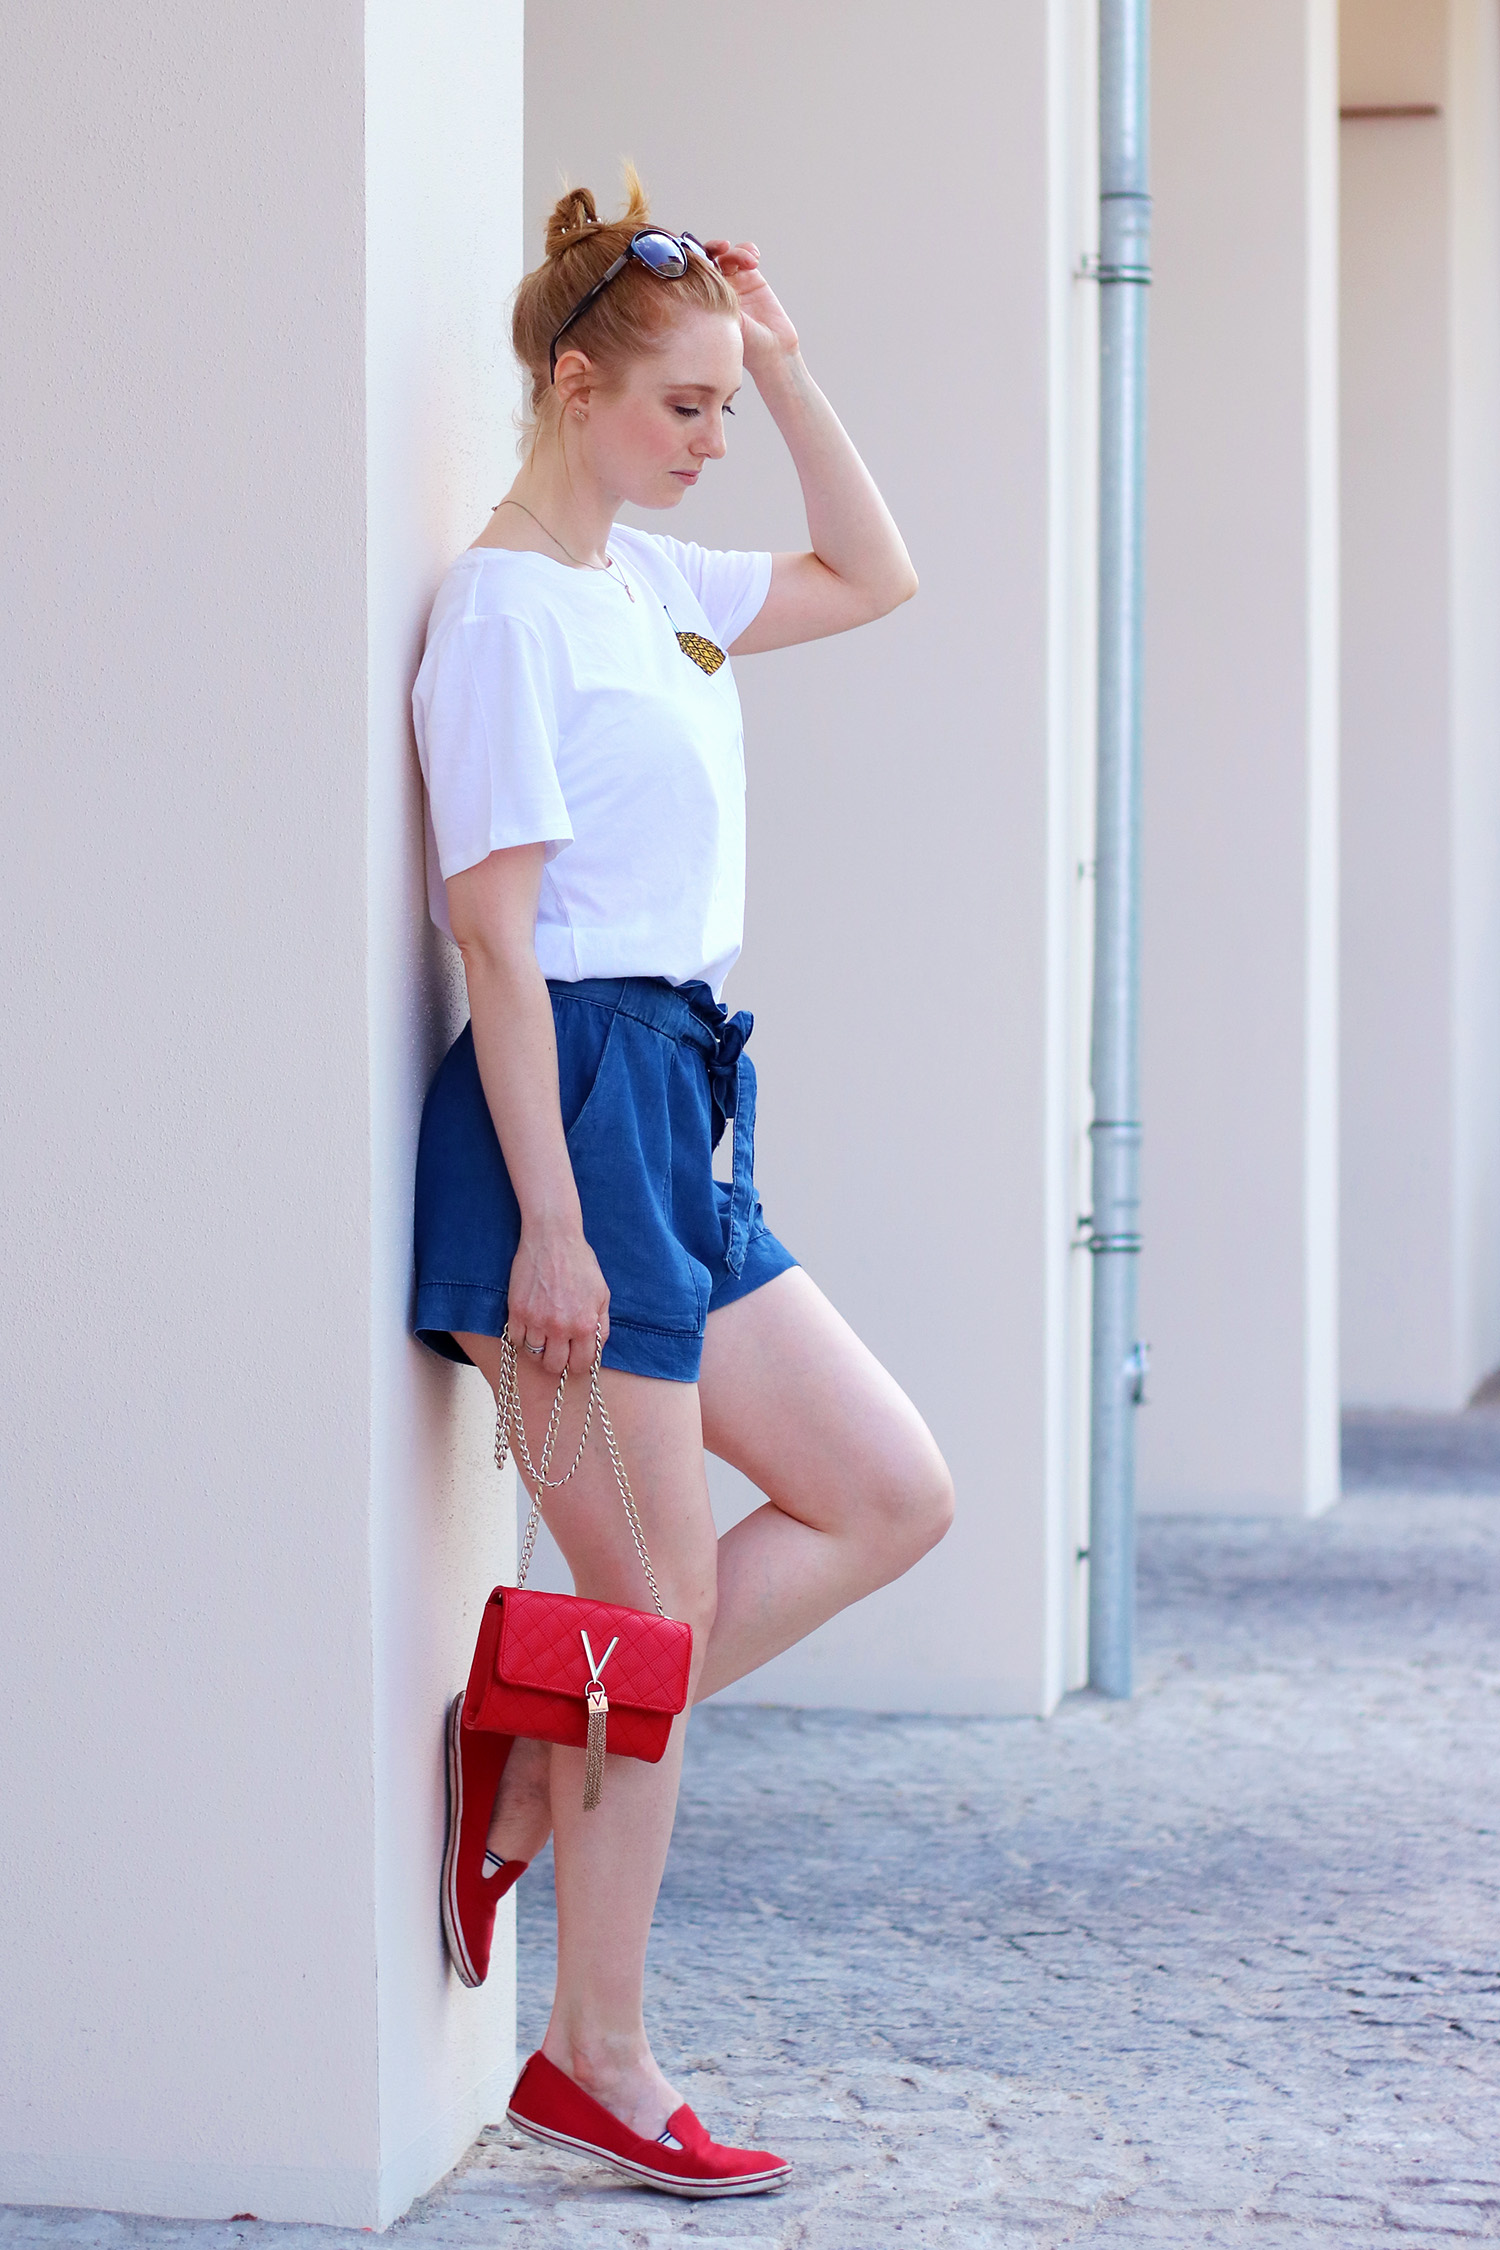 Jeans Shorts, Pants, Summer Look, Outfit, Tips, Streetstyle, Fashion Tips, Find Your Style, Influencer, Germany, Berlin, Fashion Blog, Fashion Blog, Advance Your Style, advanceyourstyle